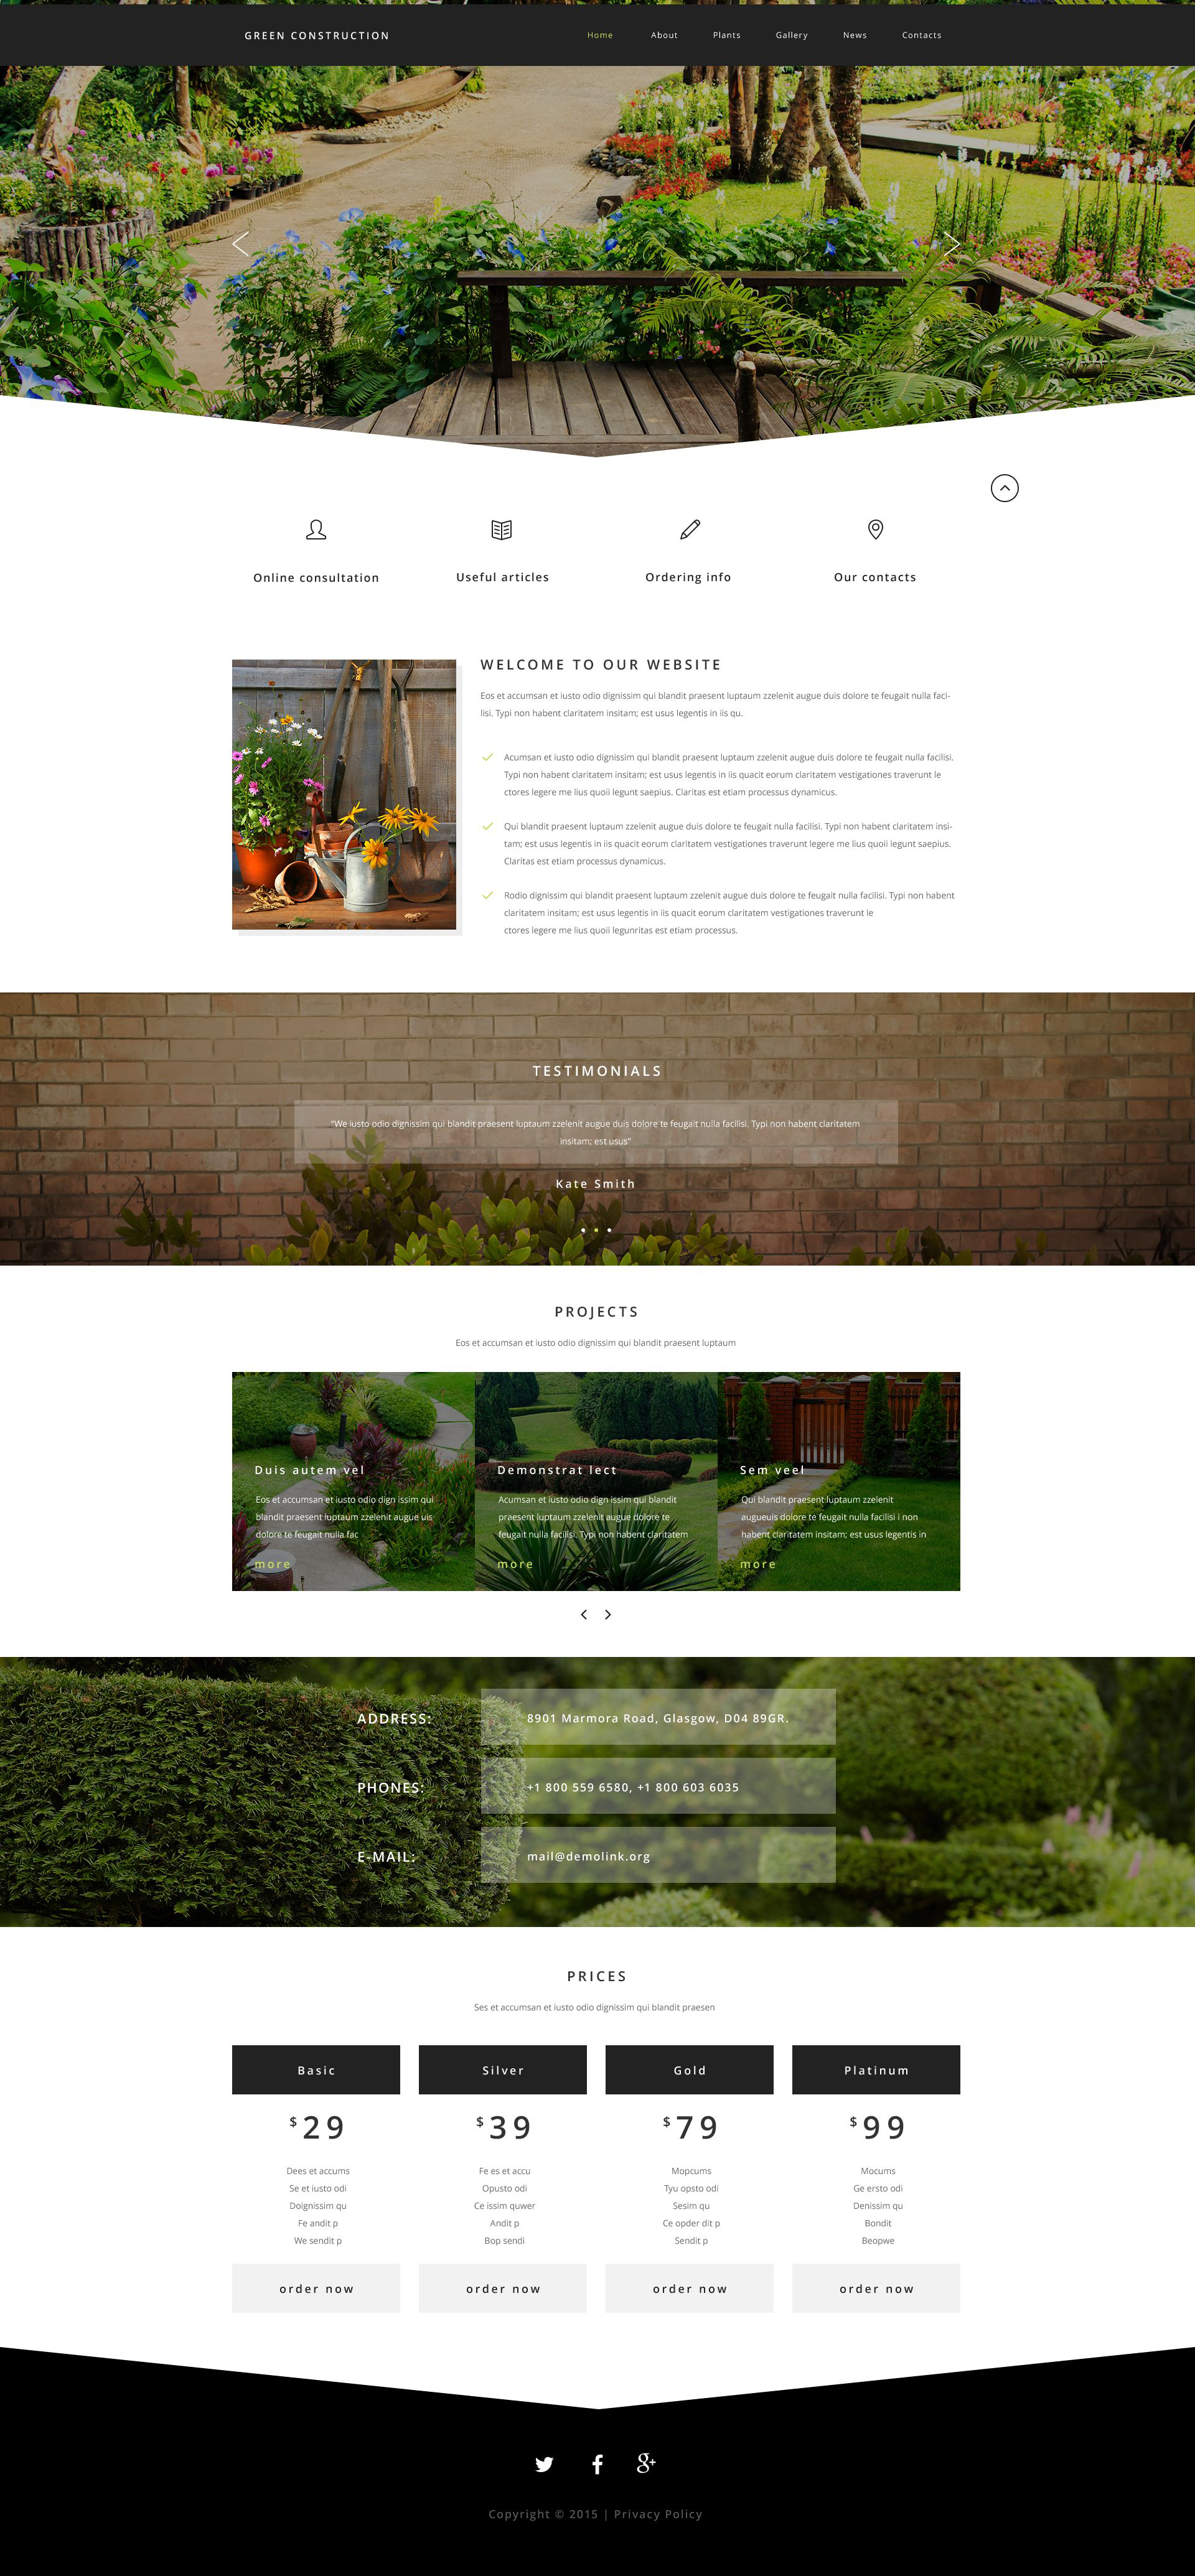 The Green Construction Responsive Javascript Animated Design 54562, one of the best website templates of its kind (exterior design, most popular), also known as green construction website template, garden website template, exterior design website template, garden website template, tools website template, guide website template, gardening design website template, landscape website template, grass website template, clipper website template, lawn-mover website template, grass-cutter website template, lawn website template, herb website template, shrub website template, tree website template, palm website template, planting website template, bamboo website template, fern company website template, residential website template, special technologies website template, workers website template, gardening website template, green welcome website template, news website template, topics website template, tools website template, events website template, advice website template, best professional website template, online and related with green construction, garden, exterior design, garden, tools, guide, gardening design, landscape, grass, clipper, lawn-mover, grass-cutter, lawn, herb, shrub, tree, palm, planting, bamboo, fern company, residential, special technologies, workers, gardening, green welcome, news, topics, tools, events, advice, best professional, online, etc.